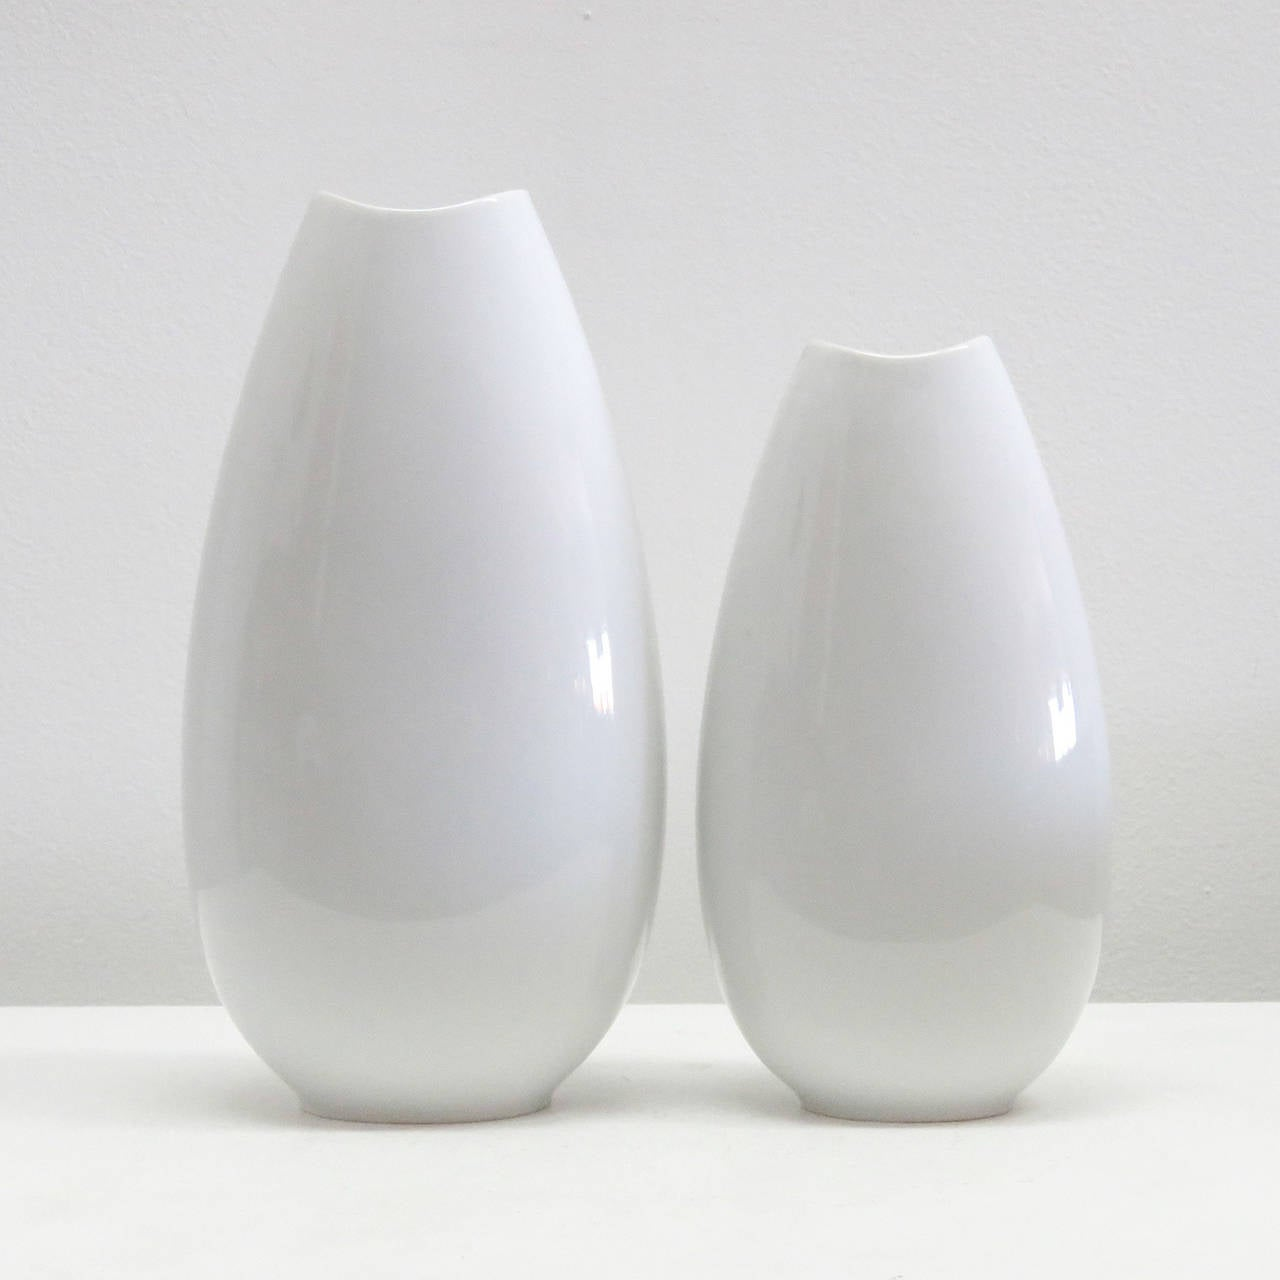 "Wonderful set of 1970s all white German ""Fischmaul"" vases by Thomas, two different sizes (H=11 W=5.75"" D=4.0"" and H=9.25"", W=5.0"", D=3.5"")."